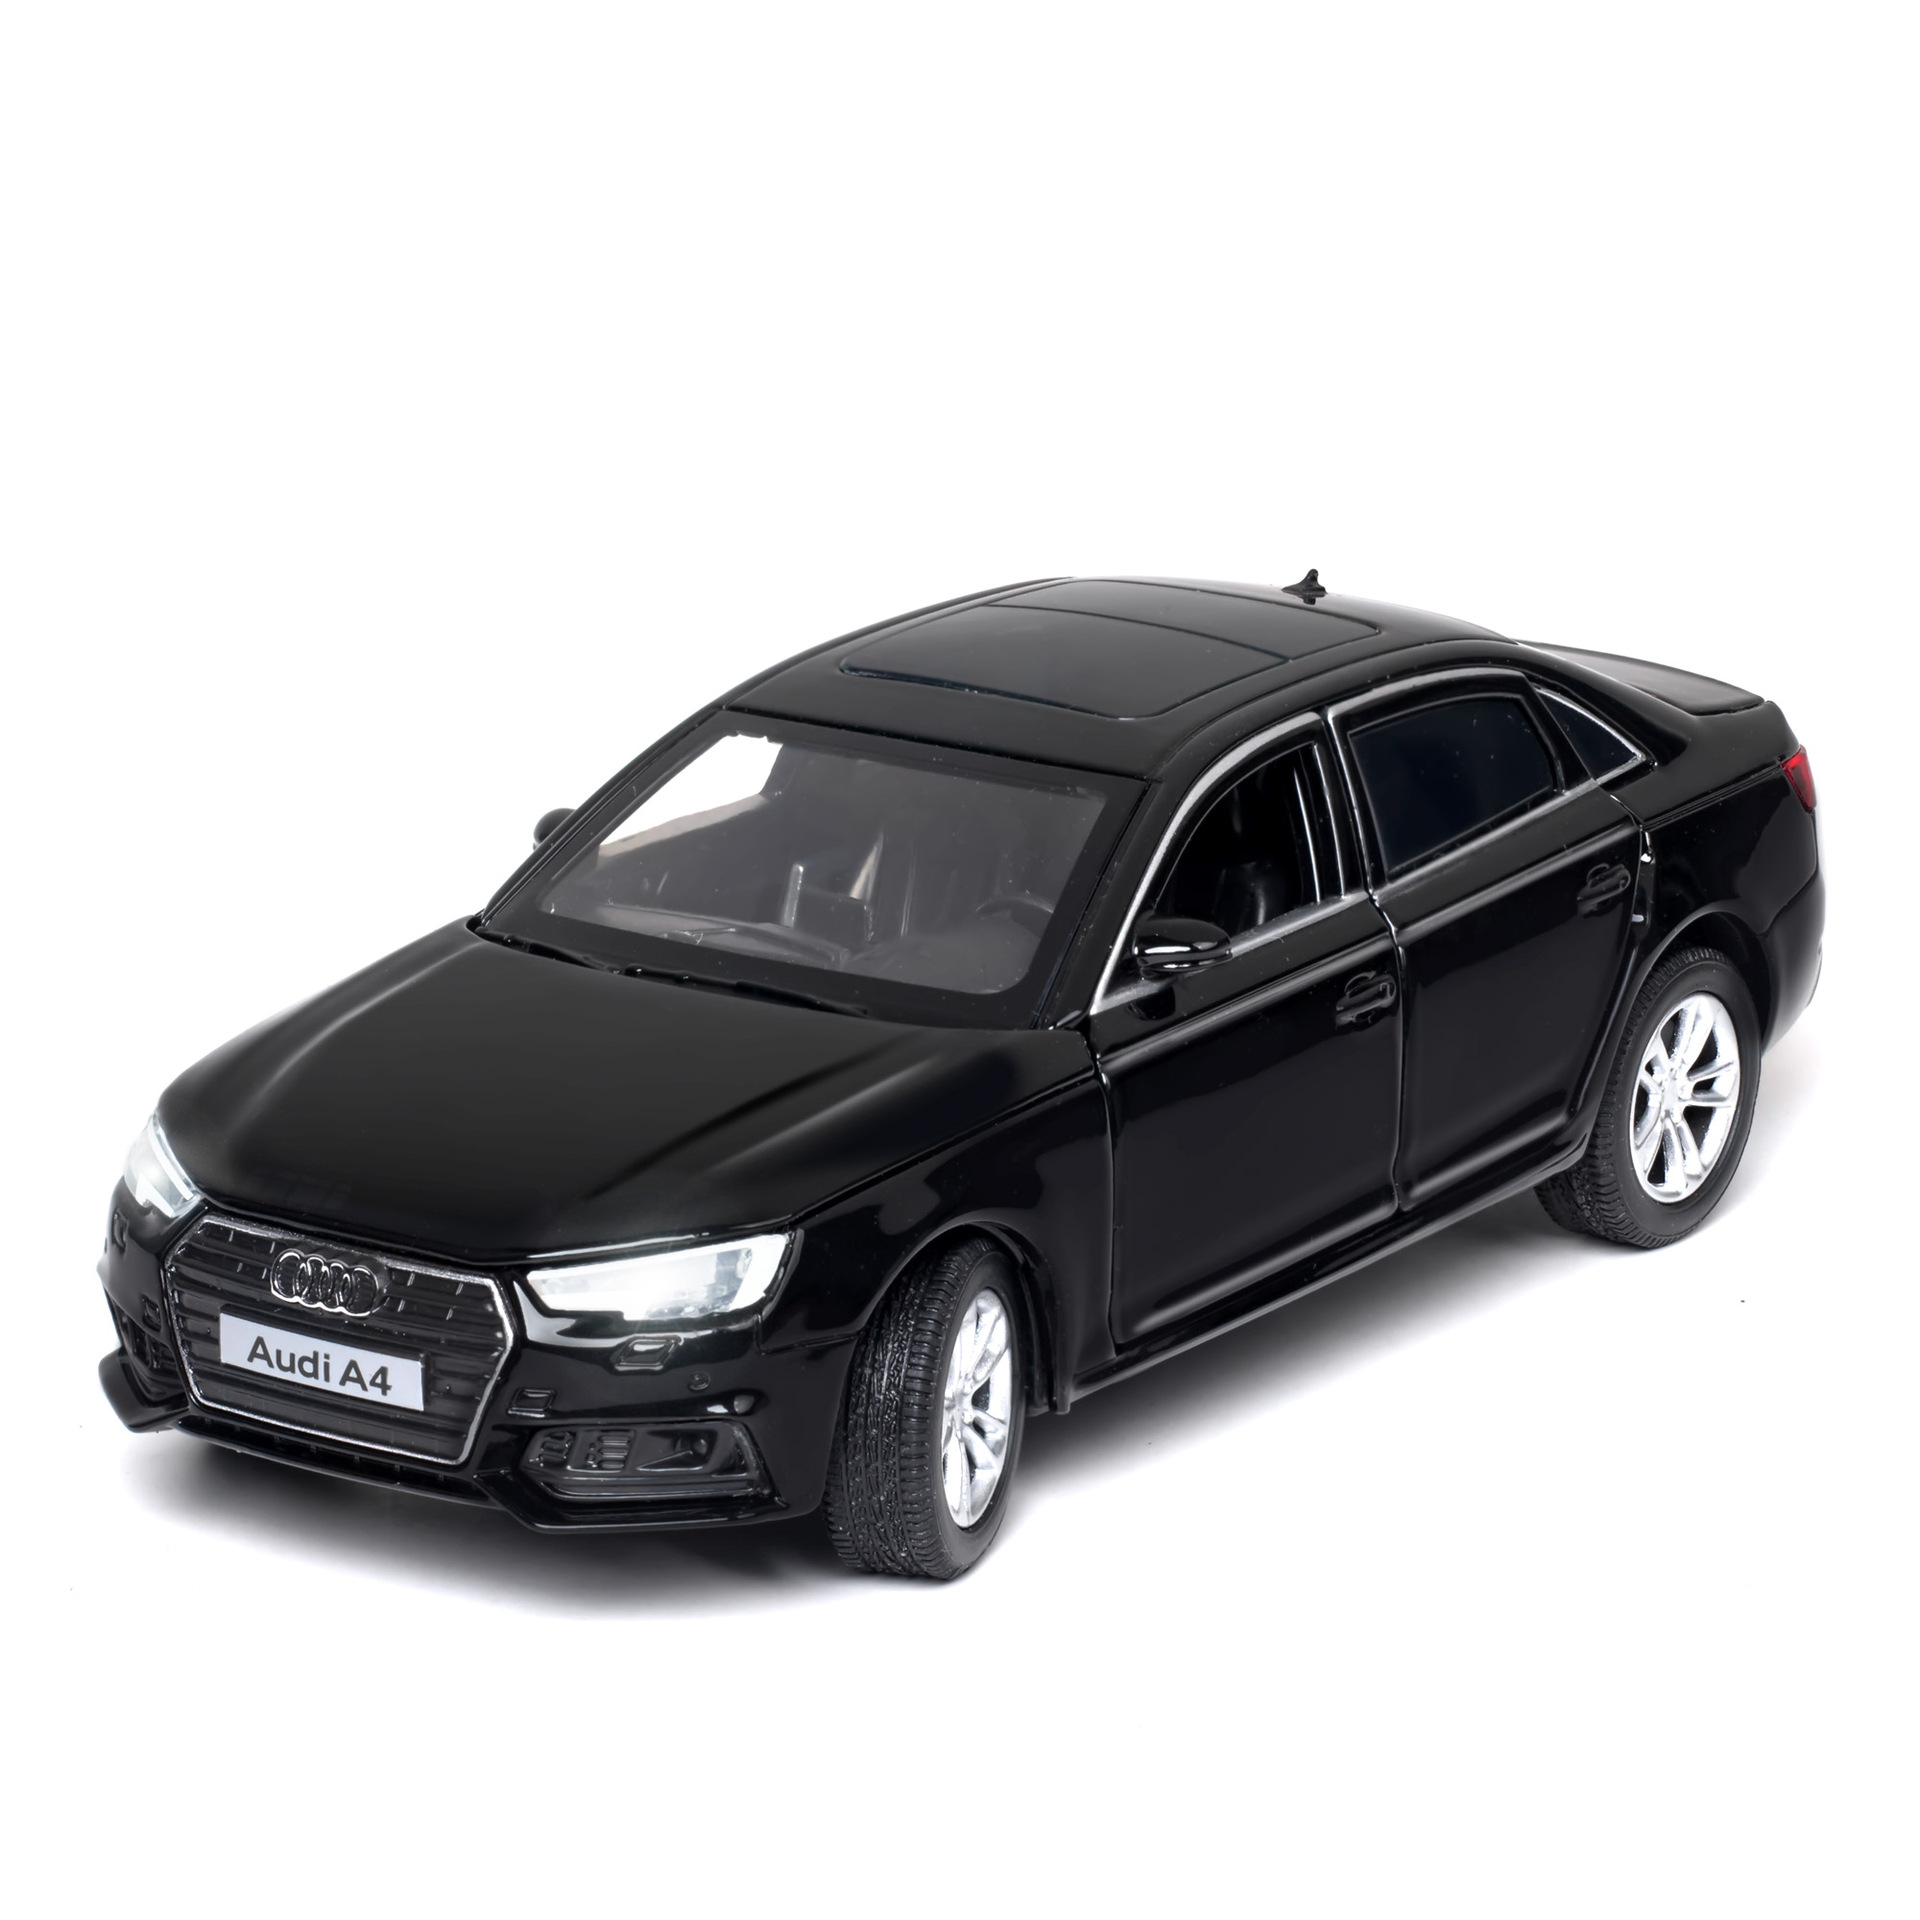 KIDAMI 1:32 AUDI A4 Alloy Car Model Metal Diecast Toys For Kids Collection/Diecast Vehicles Pull-back Vehicle Boy Toy Car Gift image